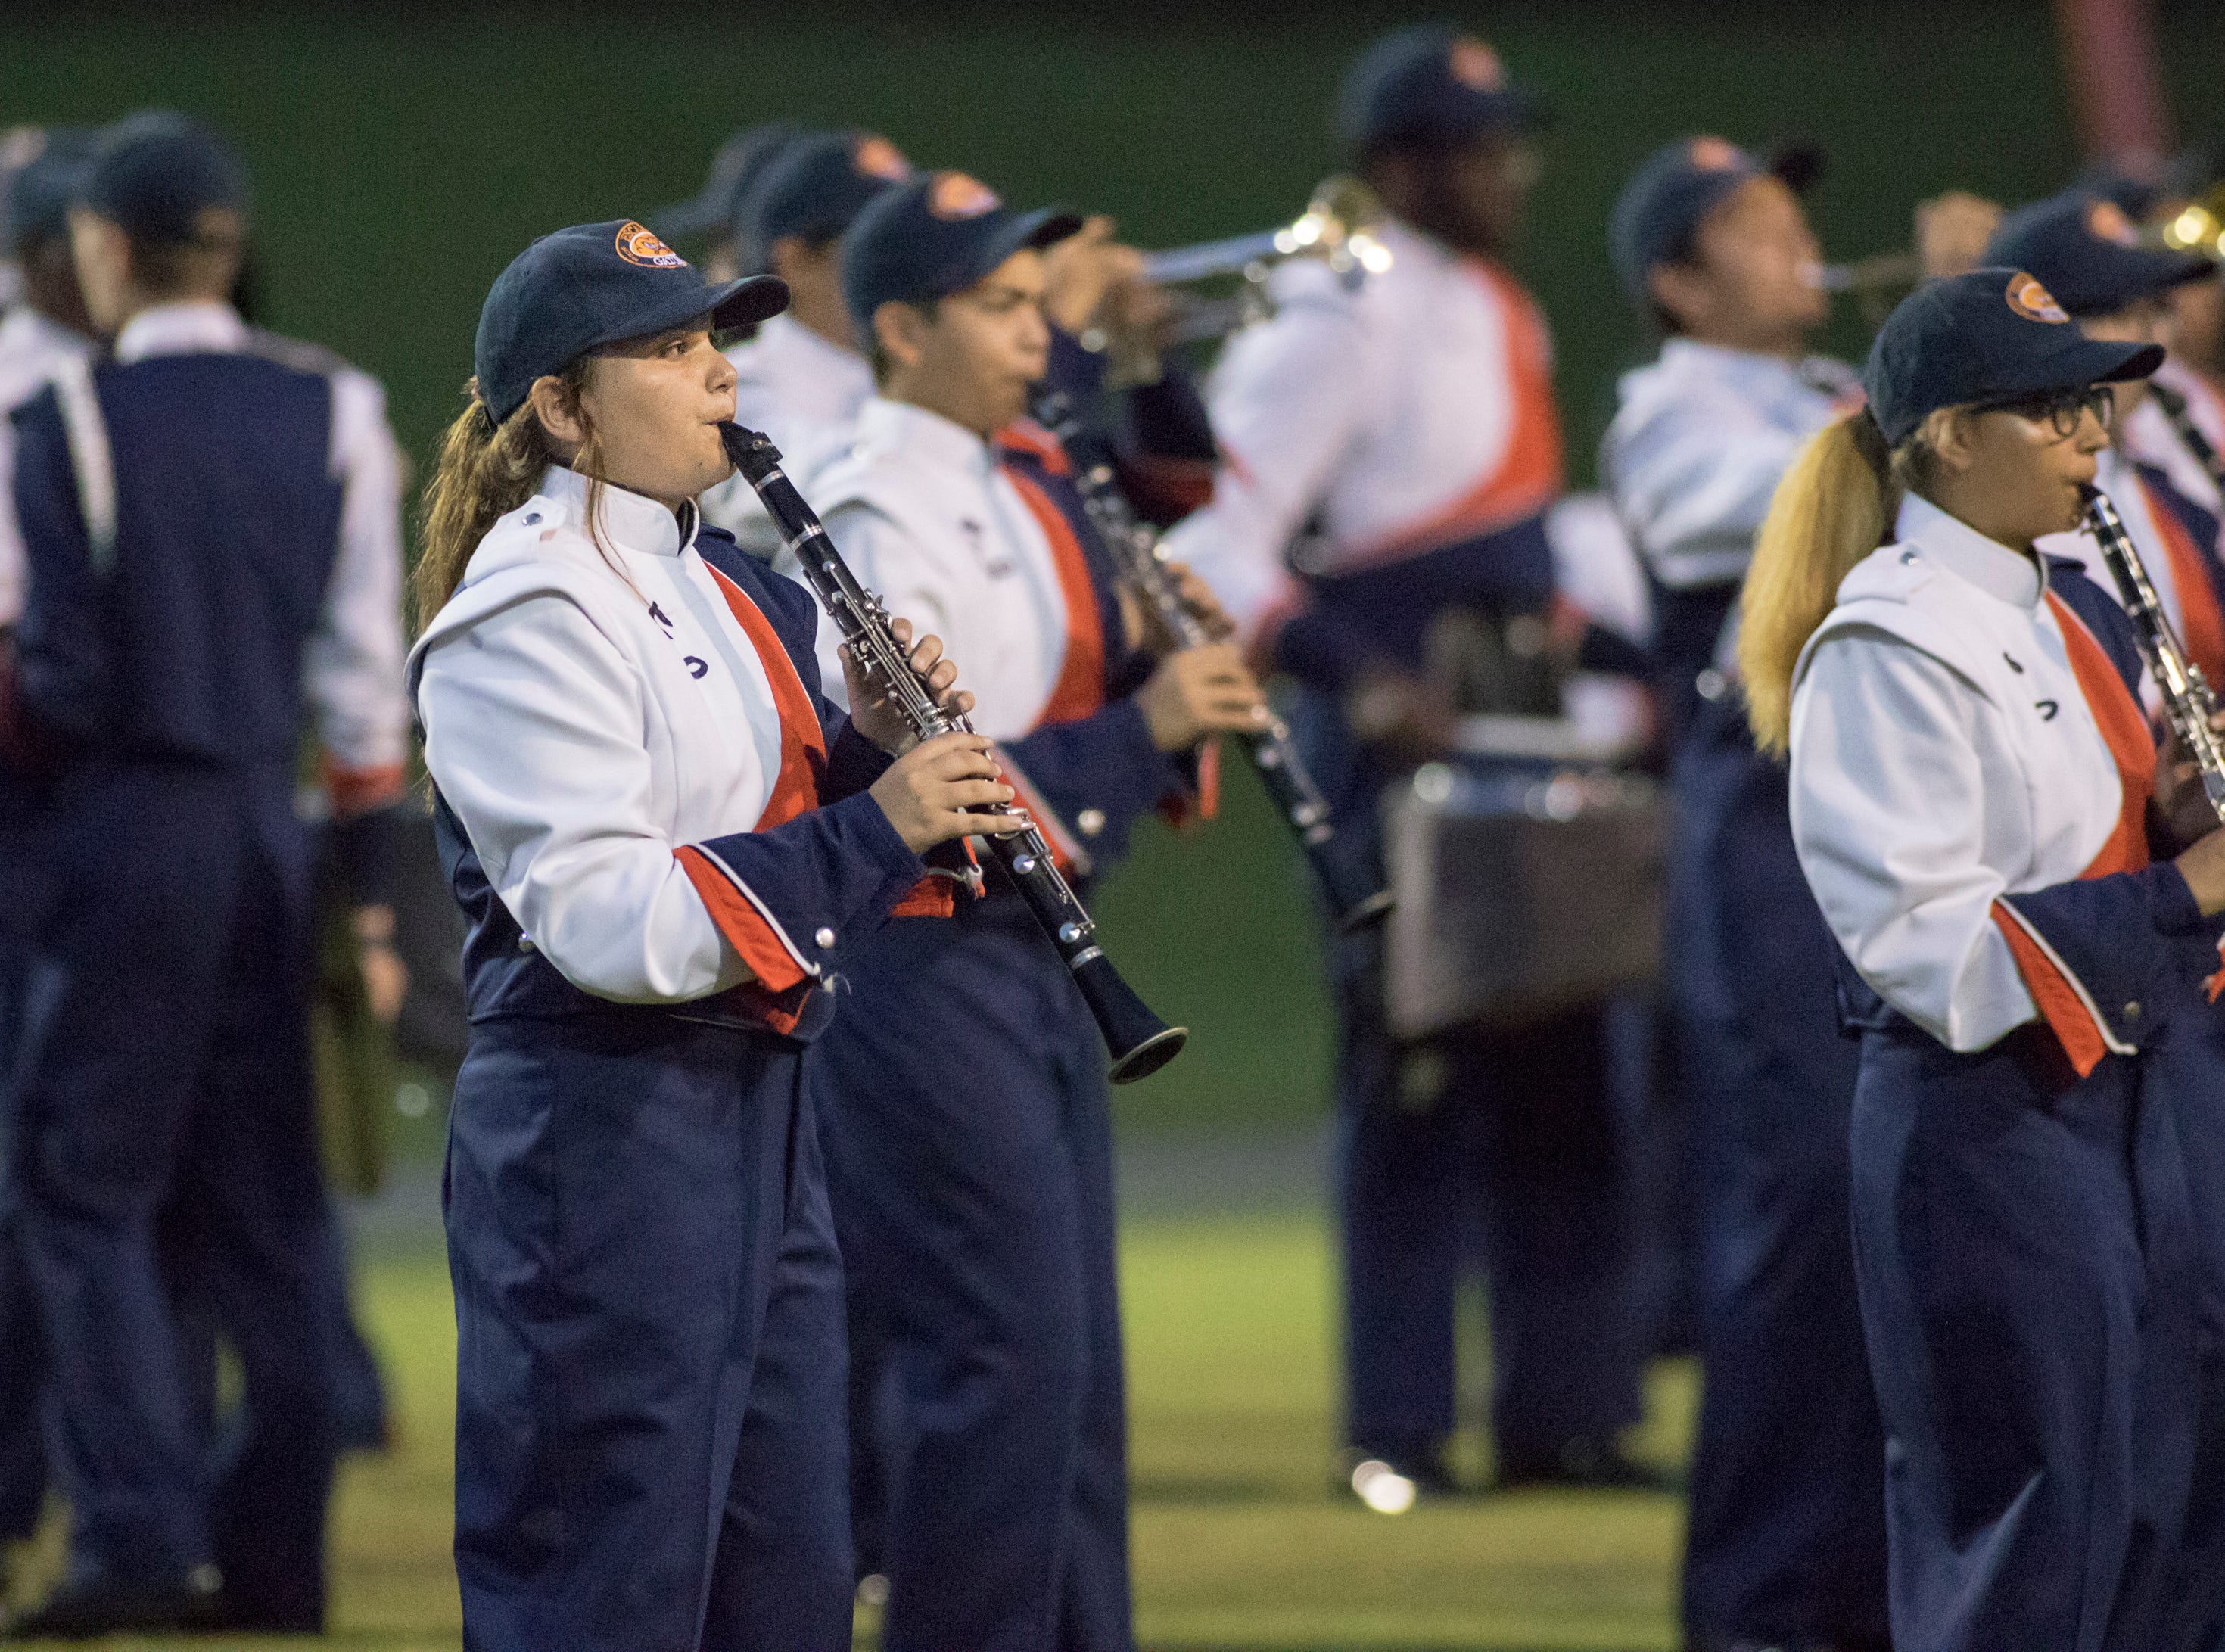 The Gators marching band performs prior to the Pine Forest vs Escambia football game at Escambia High School in Pensacola on Friday, September 28, 2018.